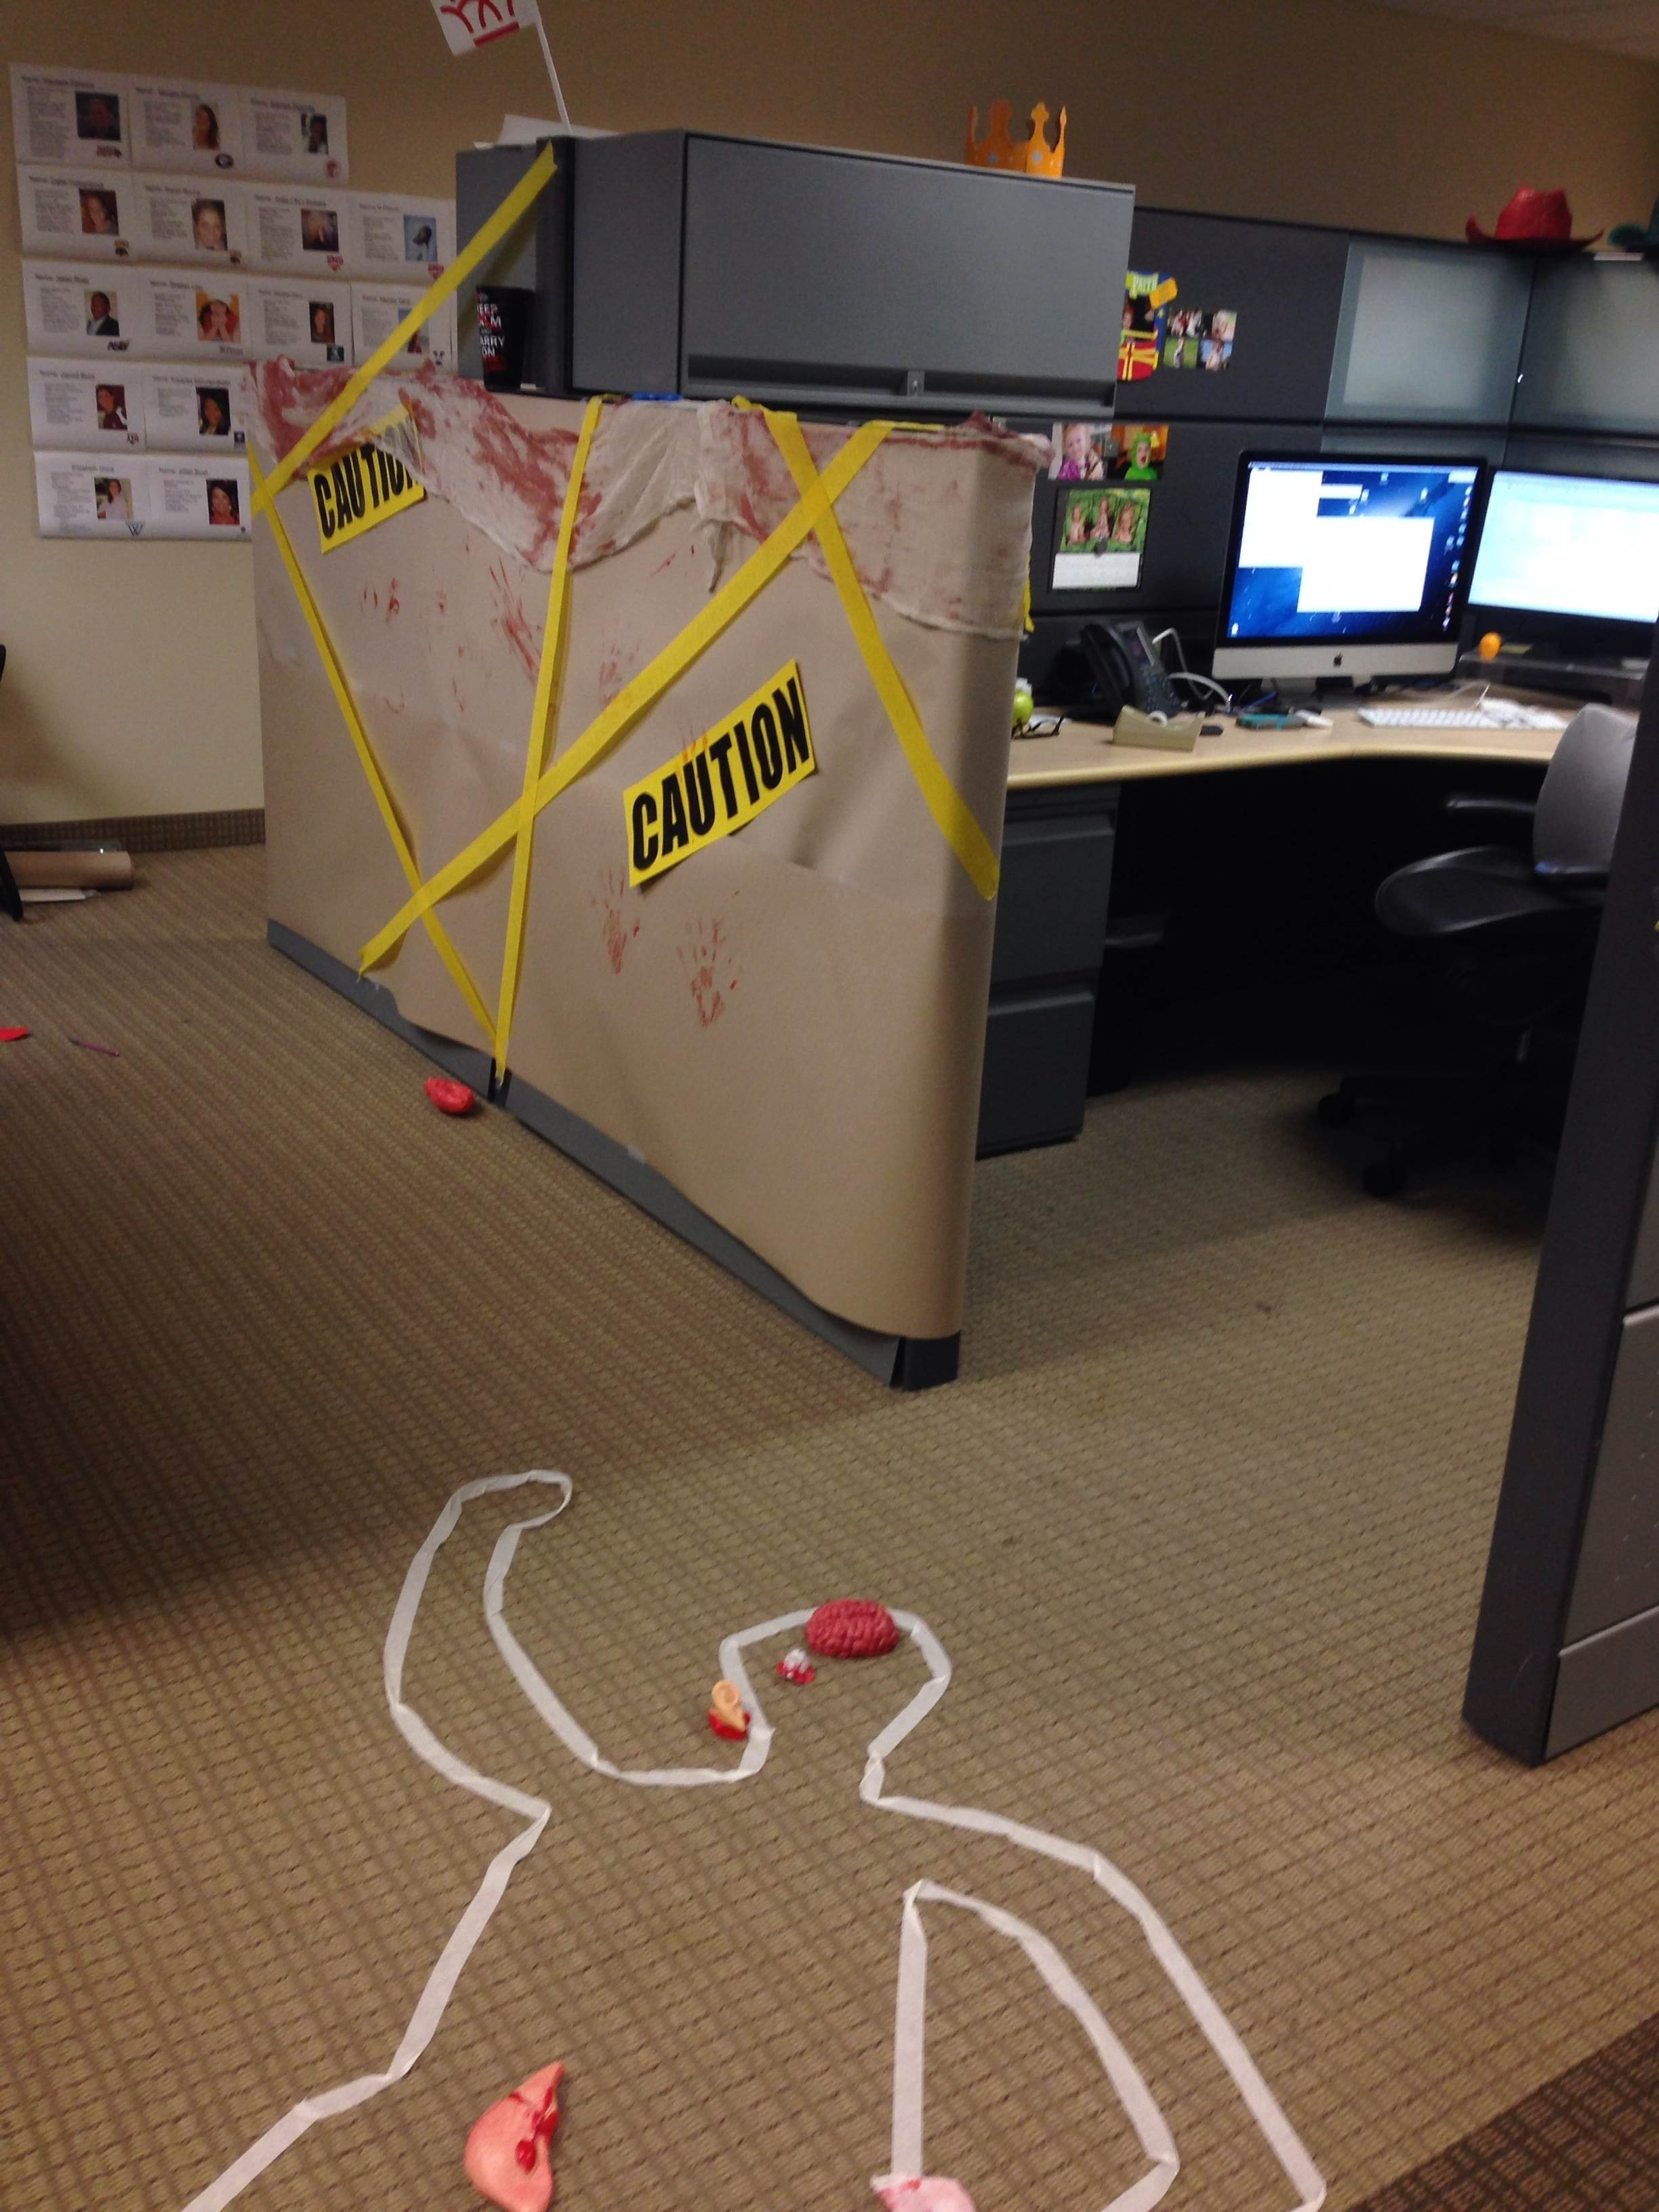 10 Pretty Halloween Ideas For The Office cube decorating contest in the office happy halloween crime scene 2 2020